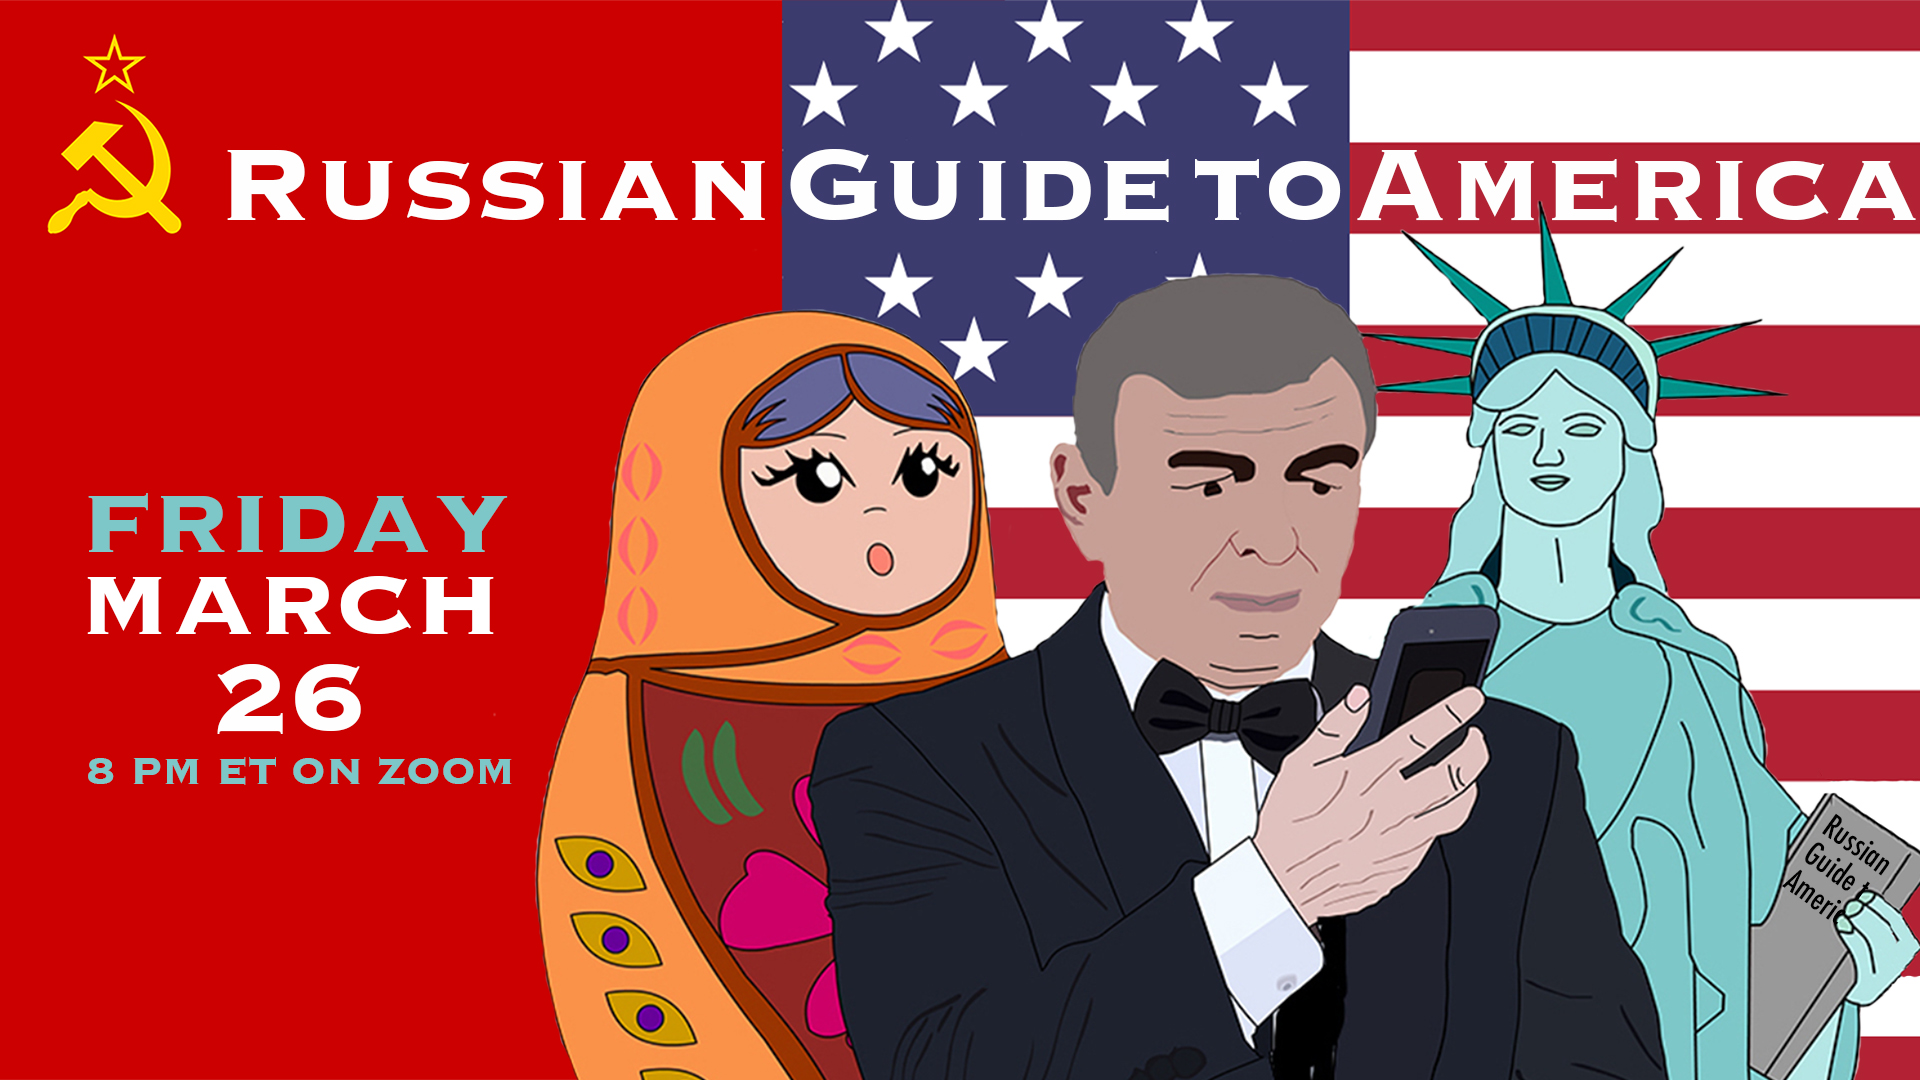 Russian guide 20210326 copy